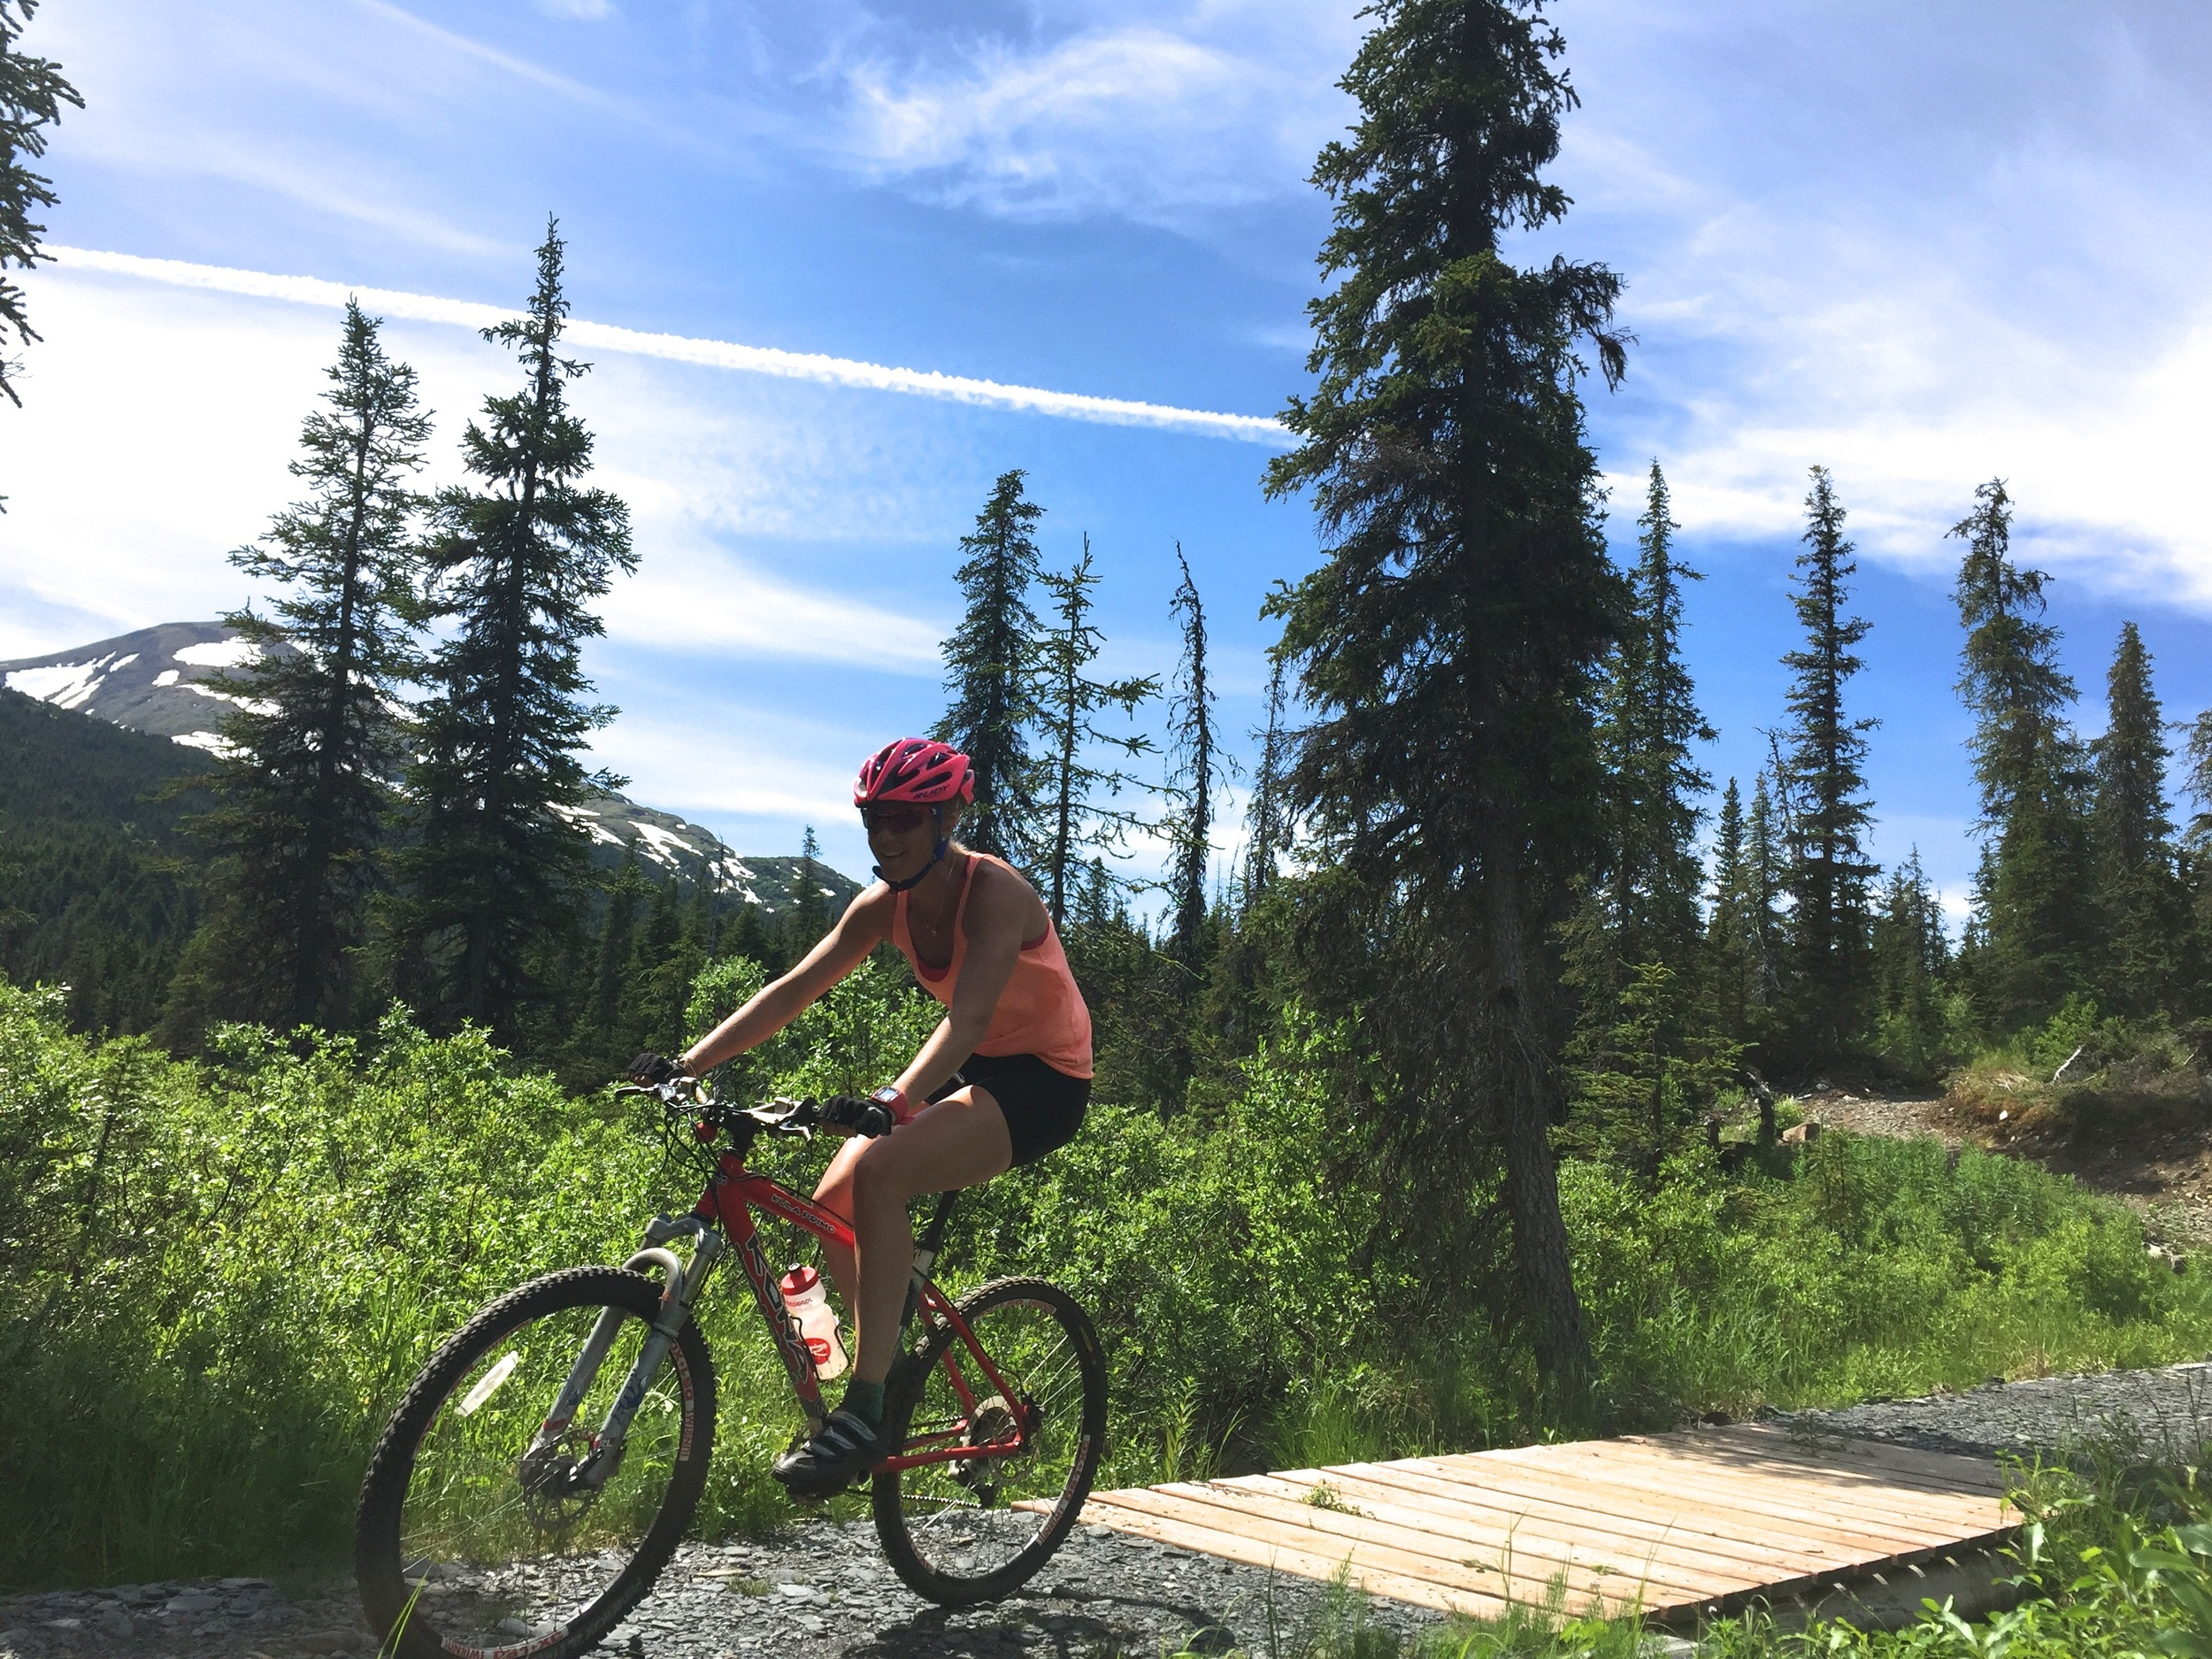 """Quite the """"scenery"""" with the mountain biking in AK!"""